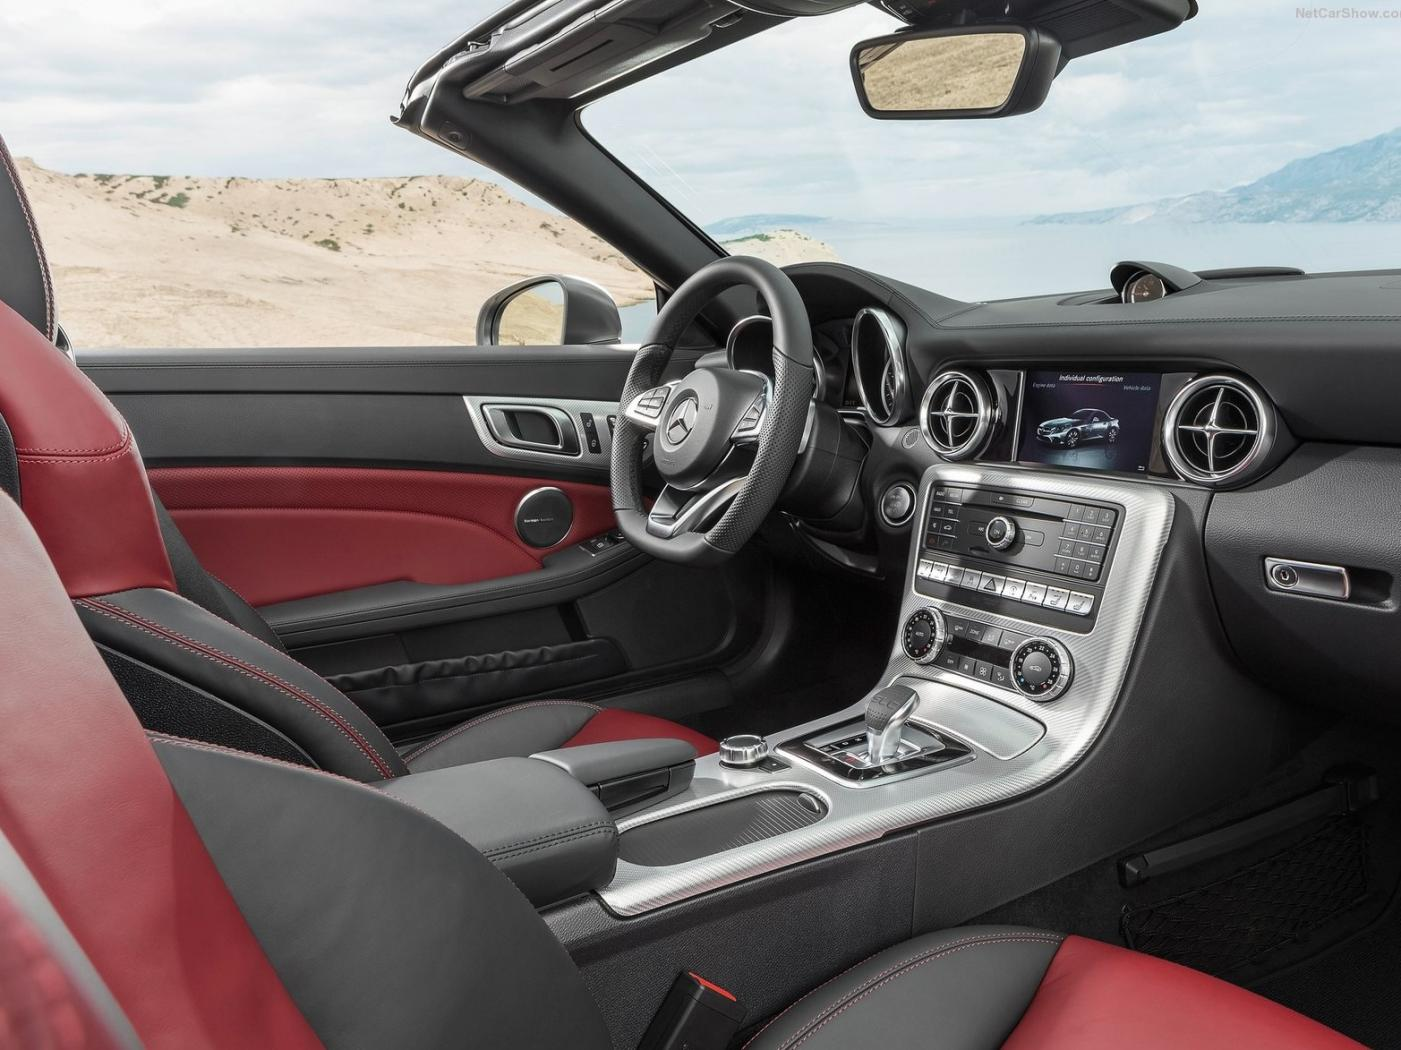 Interieur-redessine-de-la-Mercedes-SLC.jpeg